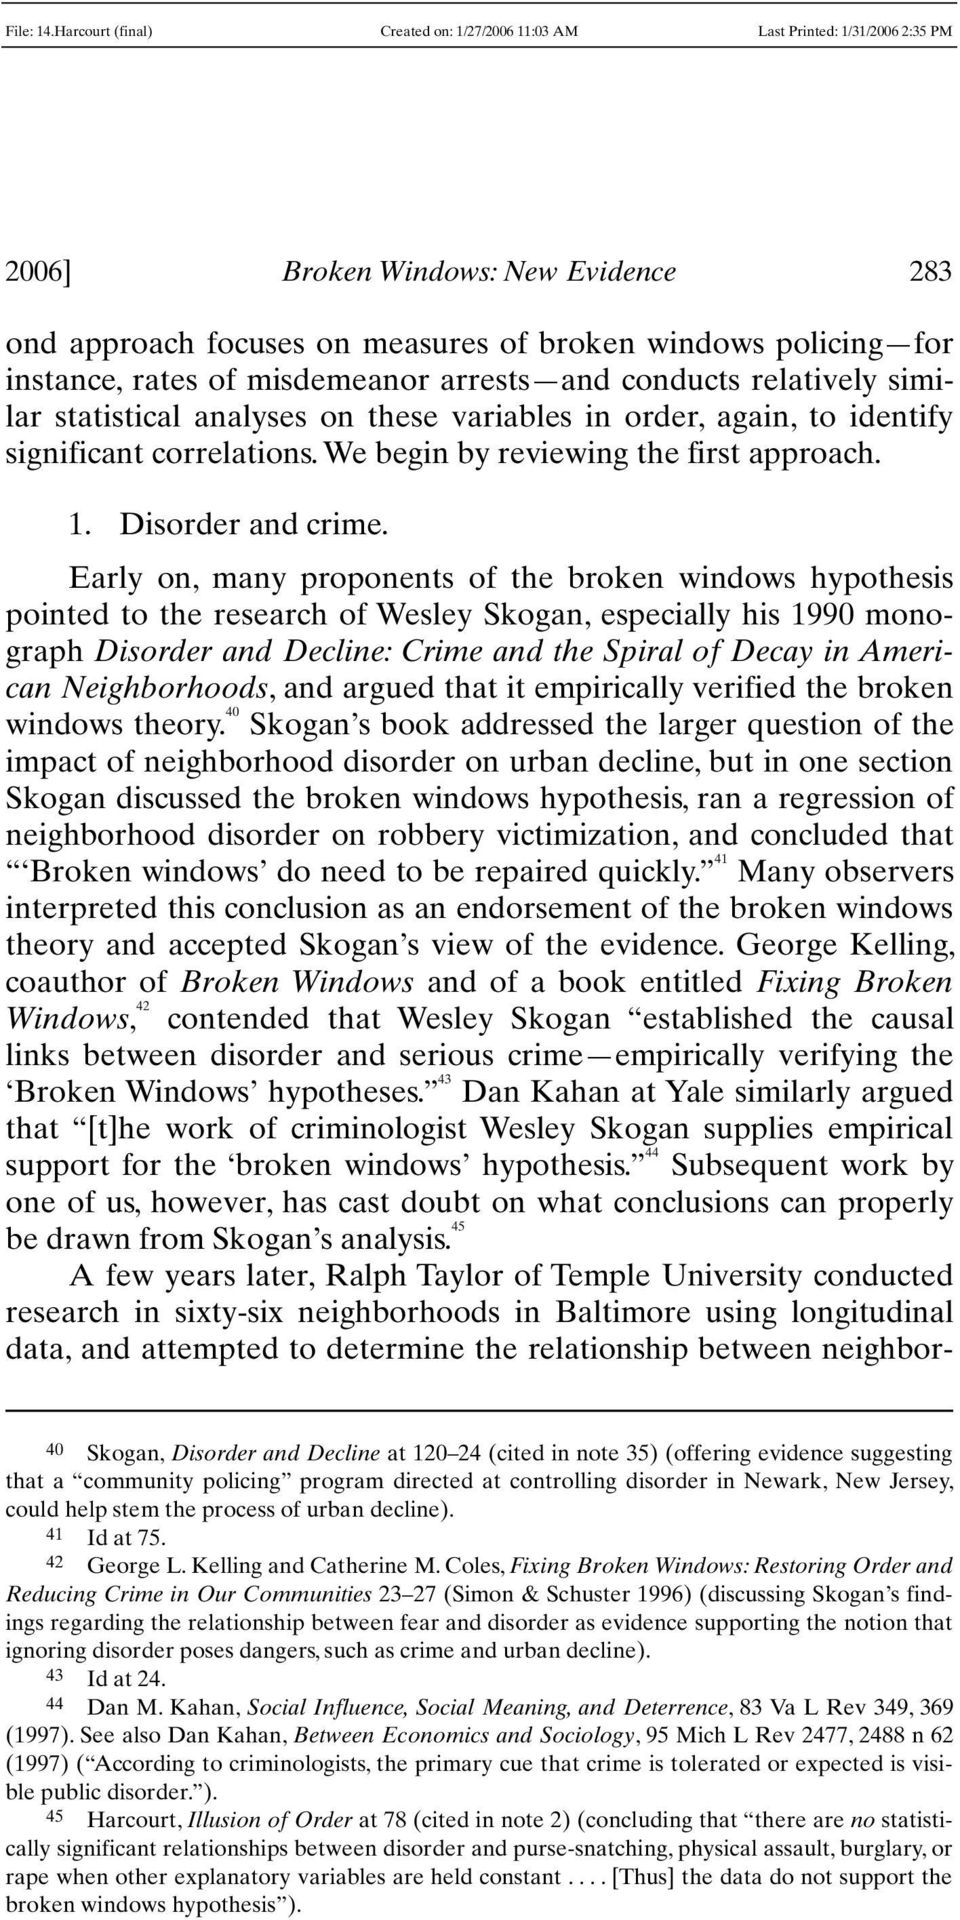 Early on, many proponents of the broken windows hypothesis pointed to the research of Wesley Skogan, especially his 1990 monograph Disorder and Decline: Crime and the Spiral of Decay in American